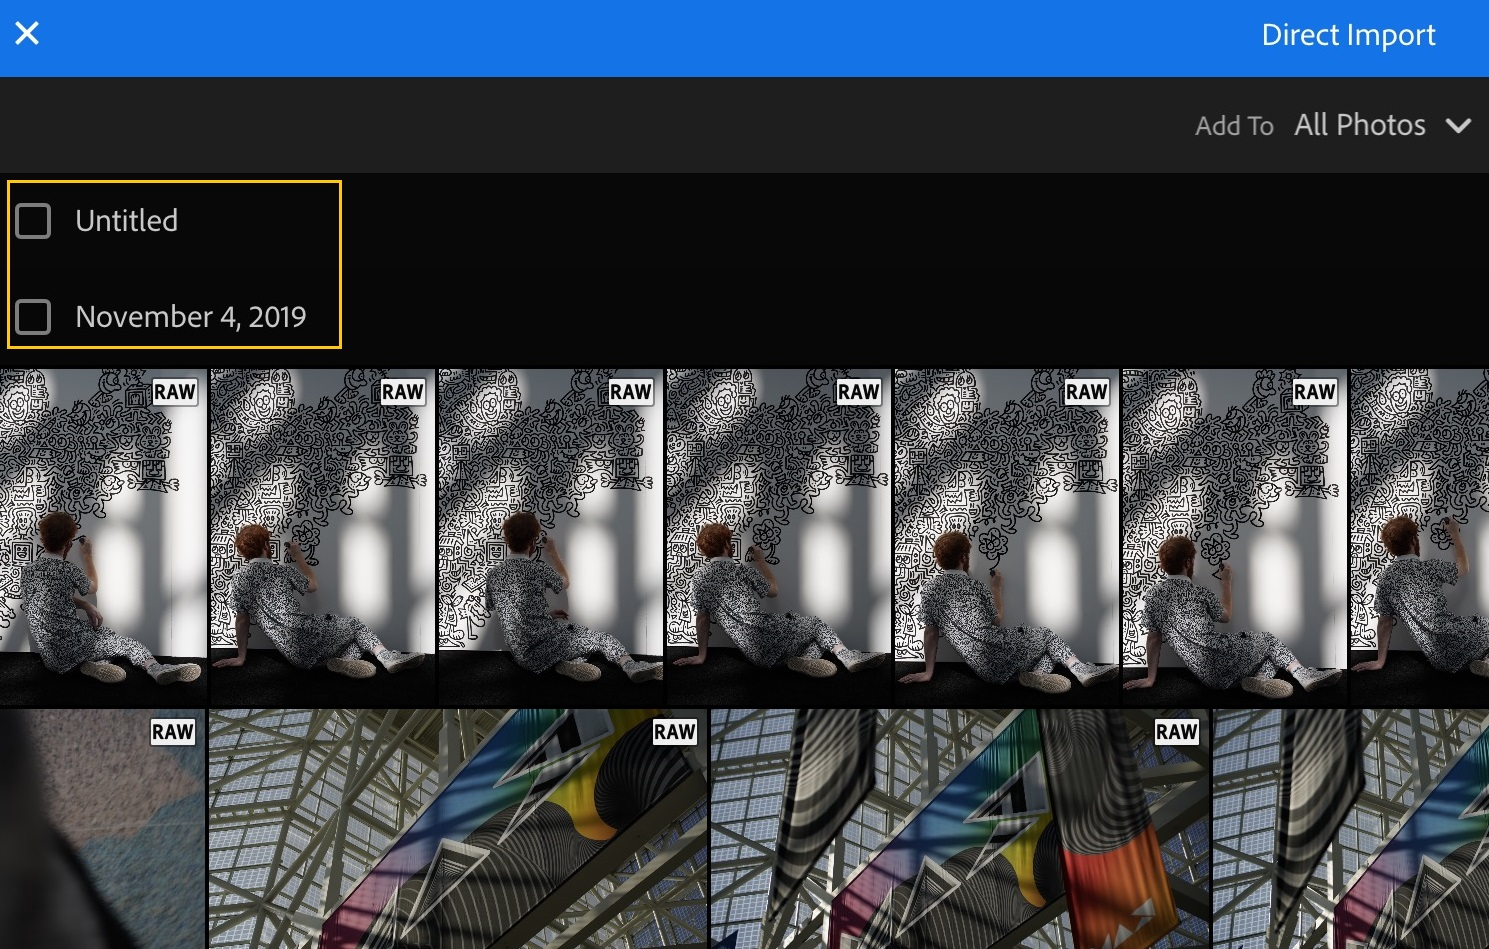 Directly import photos of your choice to Lightroom.